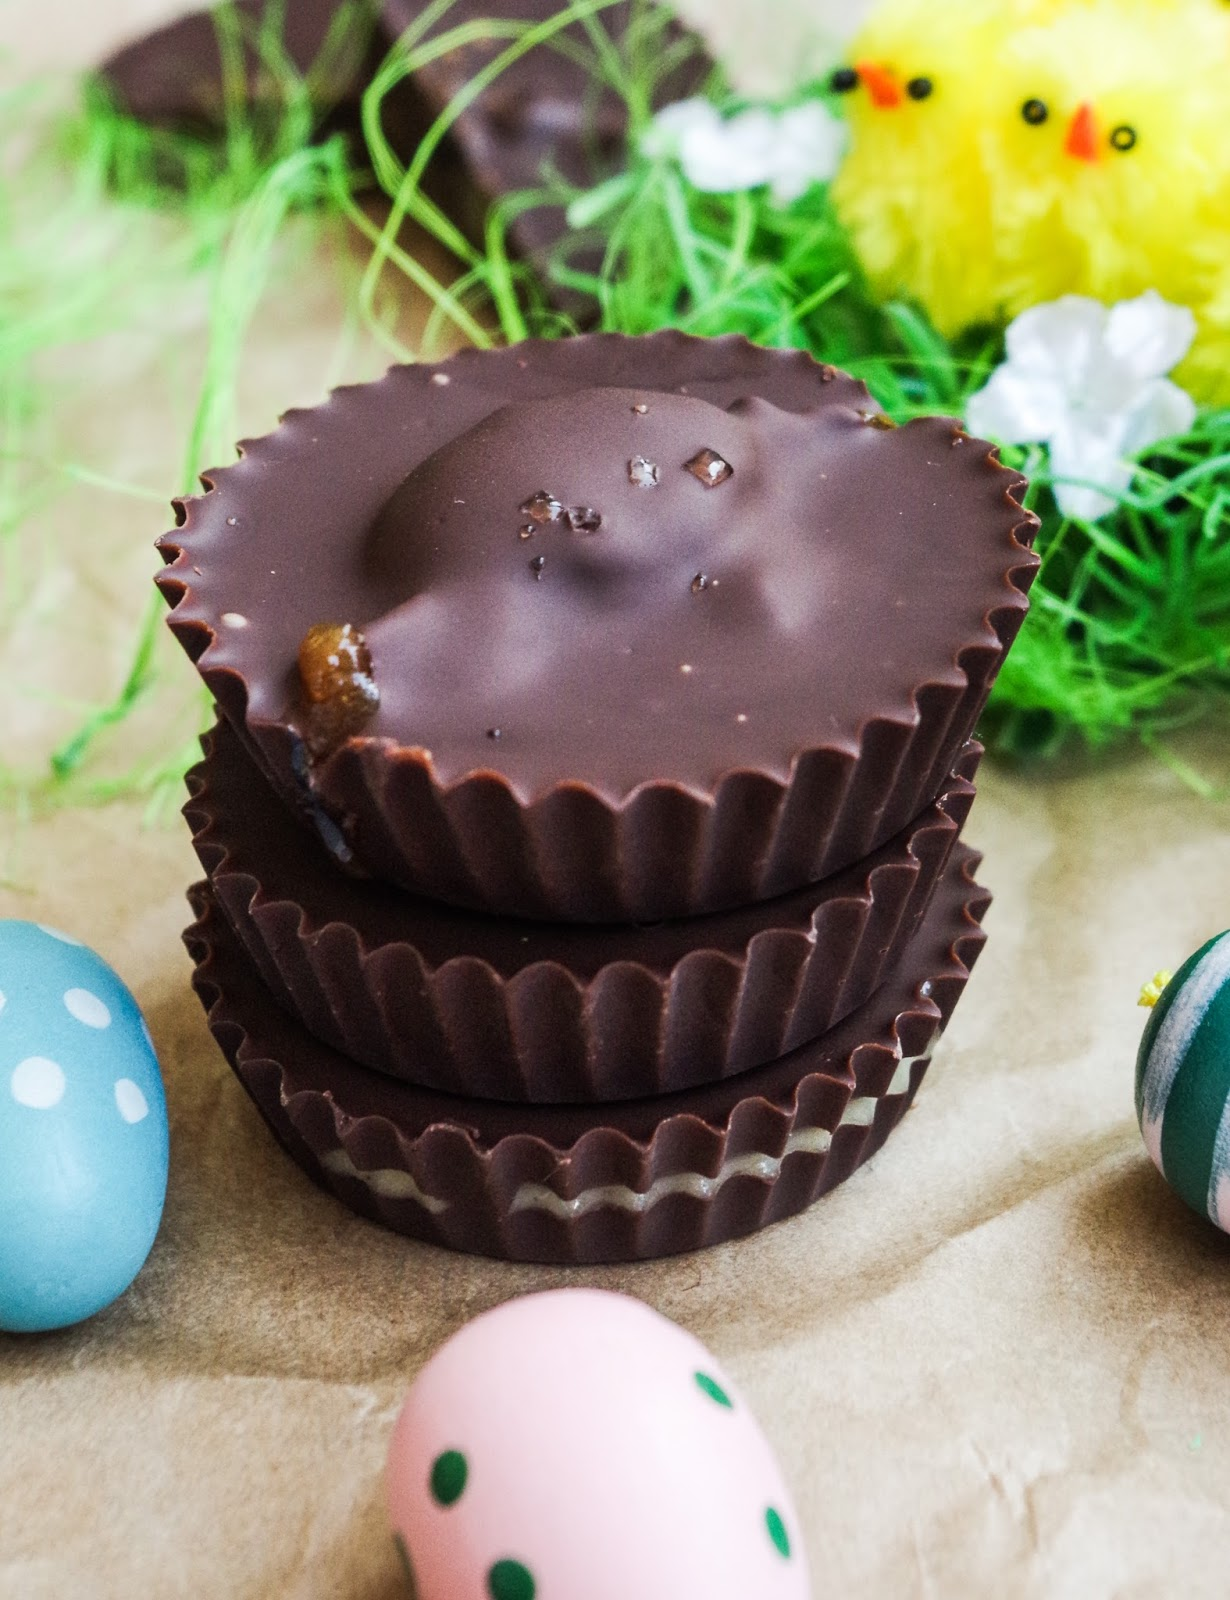 Easter Chocolate Cups in 3 flavors: Salted Vanilla Caramel, Cashew Cream Egg, Hot Cross Bun by Cassidy of Euphoric Vegan. #eastertreats #easter #bunny #rabbit #easterdesserts #veganeaster #veganeasterrecipes #eastergifts #eastervegan #veganeastergifts #homemadeveganeaster